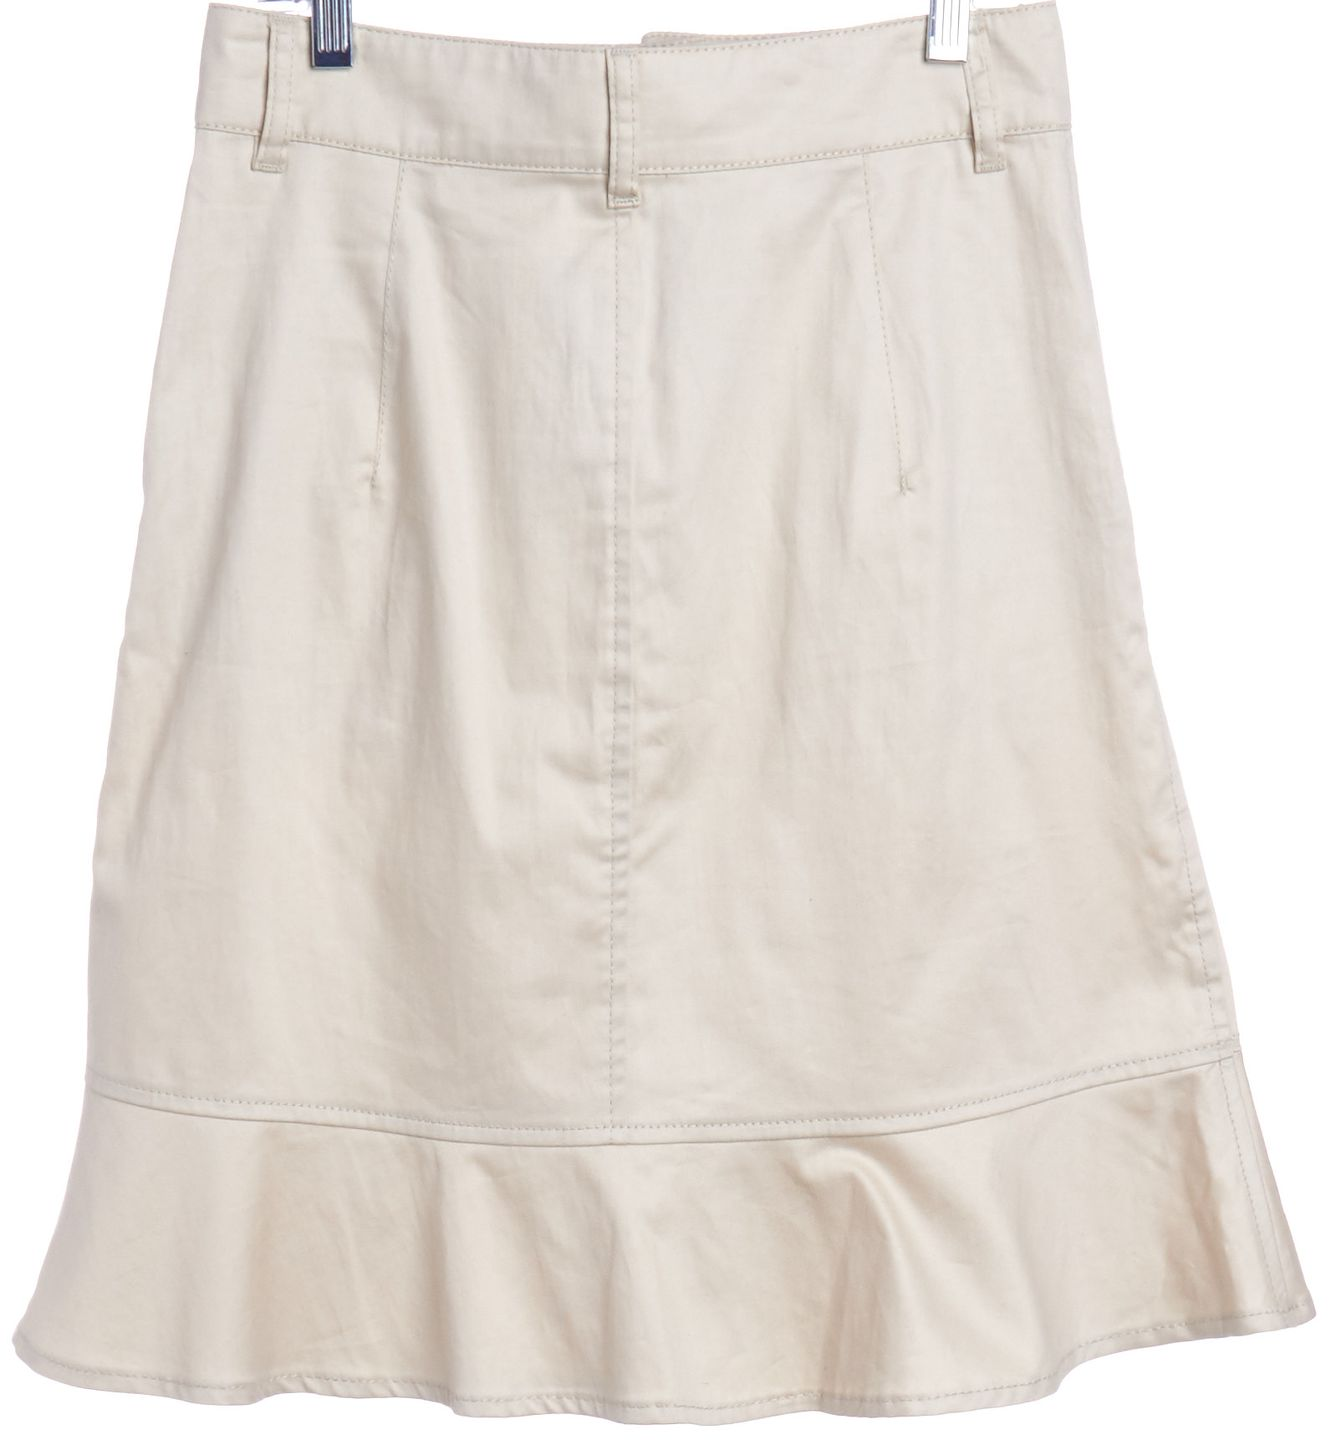 RED Valentino Ivory A-Line Skirt | Material World